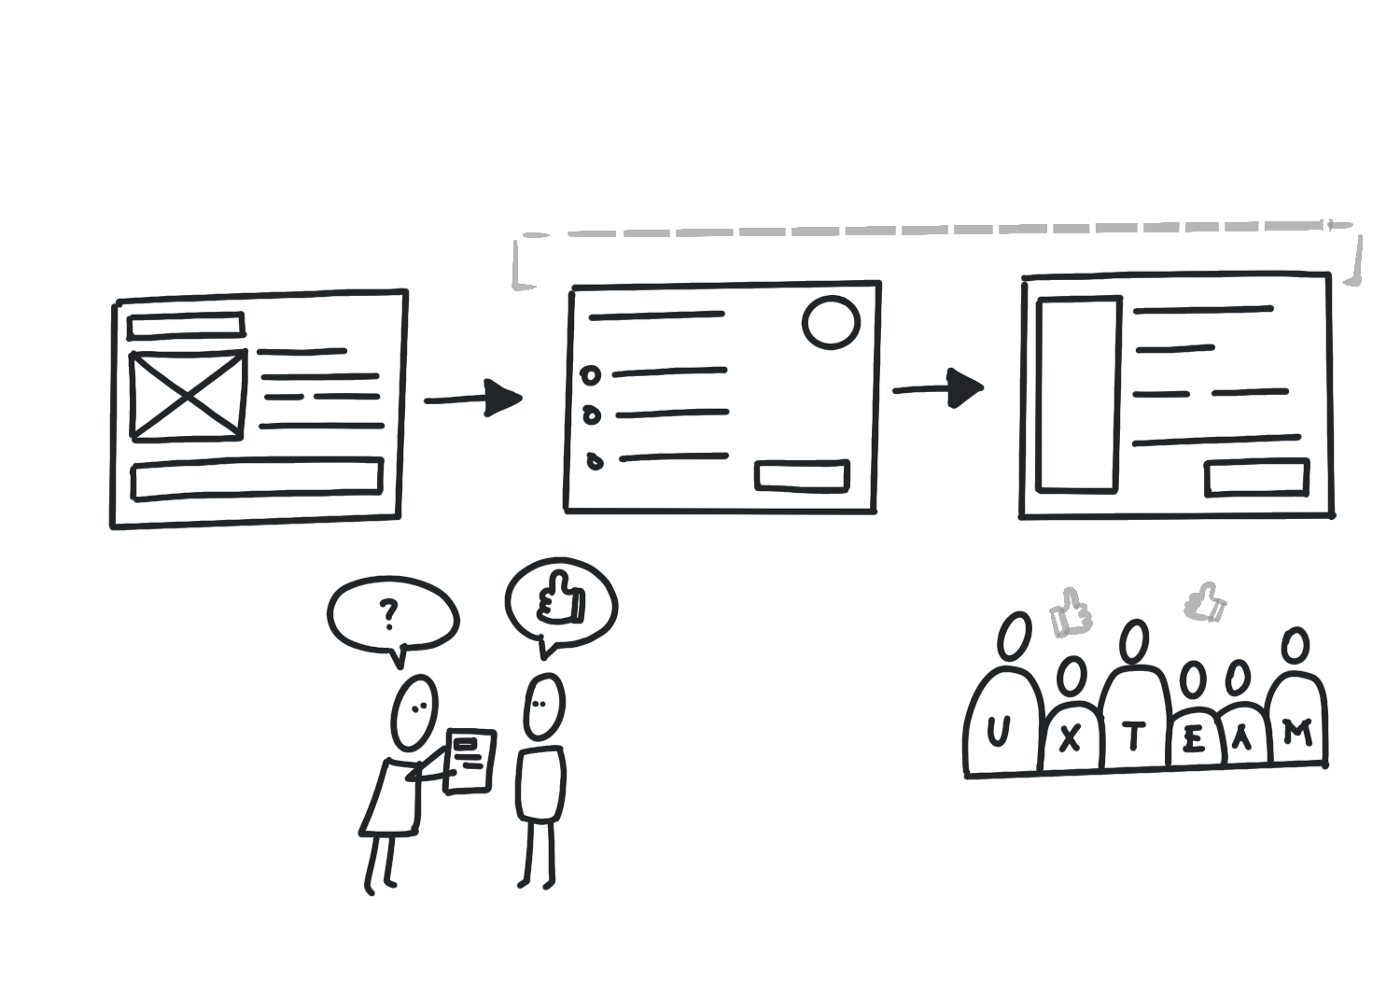 An illustration of an improved UX workflow with approval from the UX team and user testing.